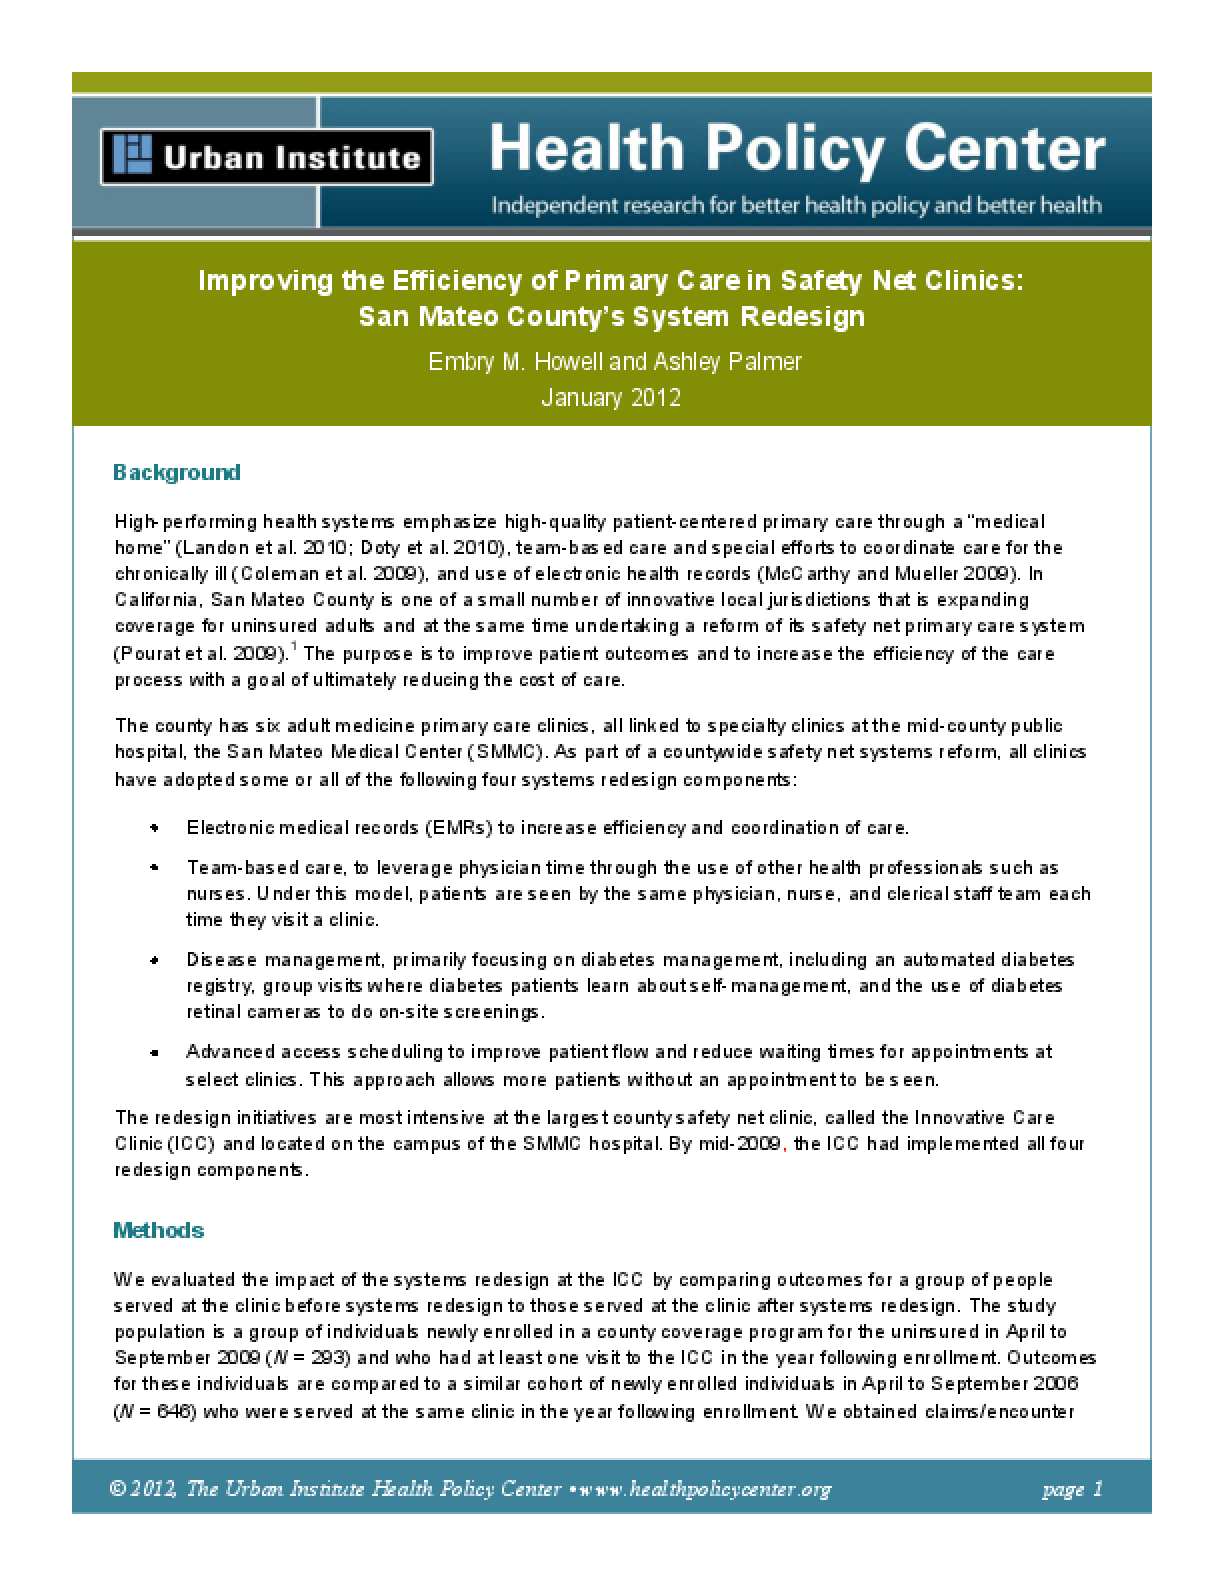 Improving the Efficiency of Primary Care in Safety Net Clinics: San Mateo County's System Redesign